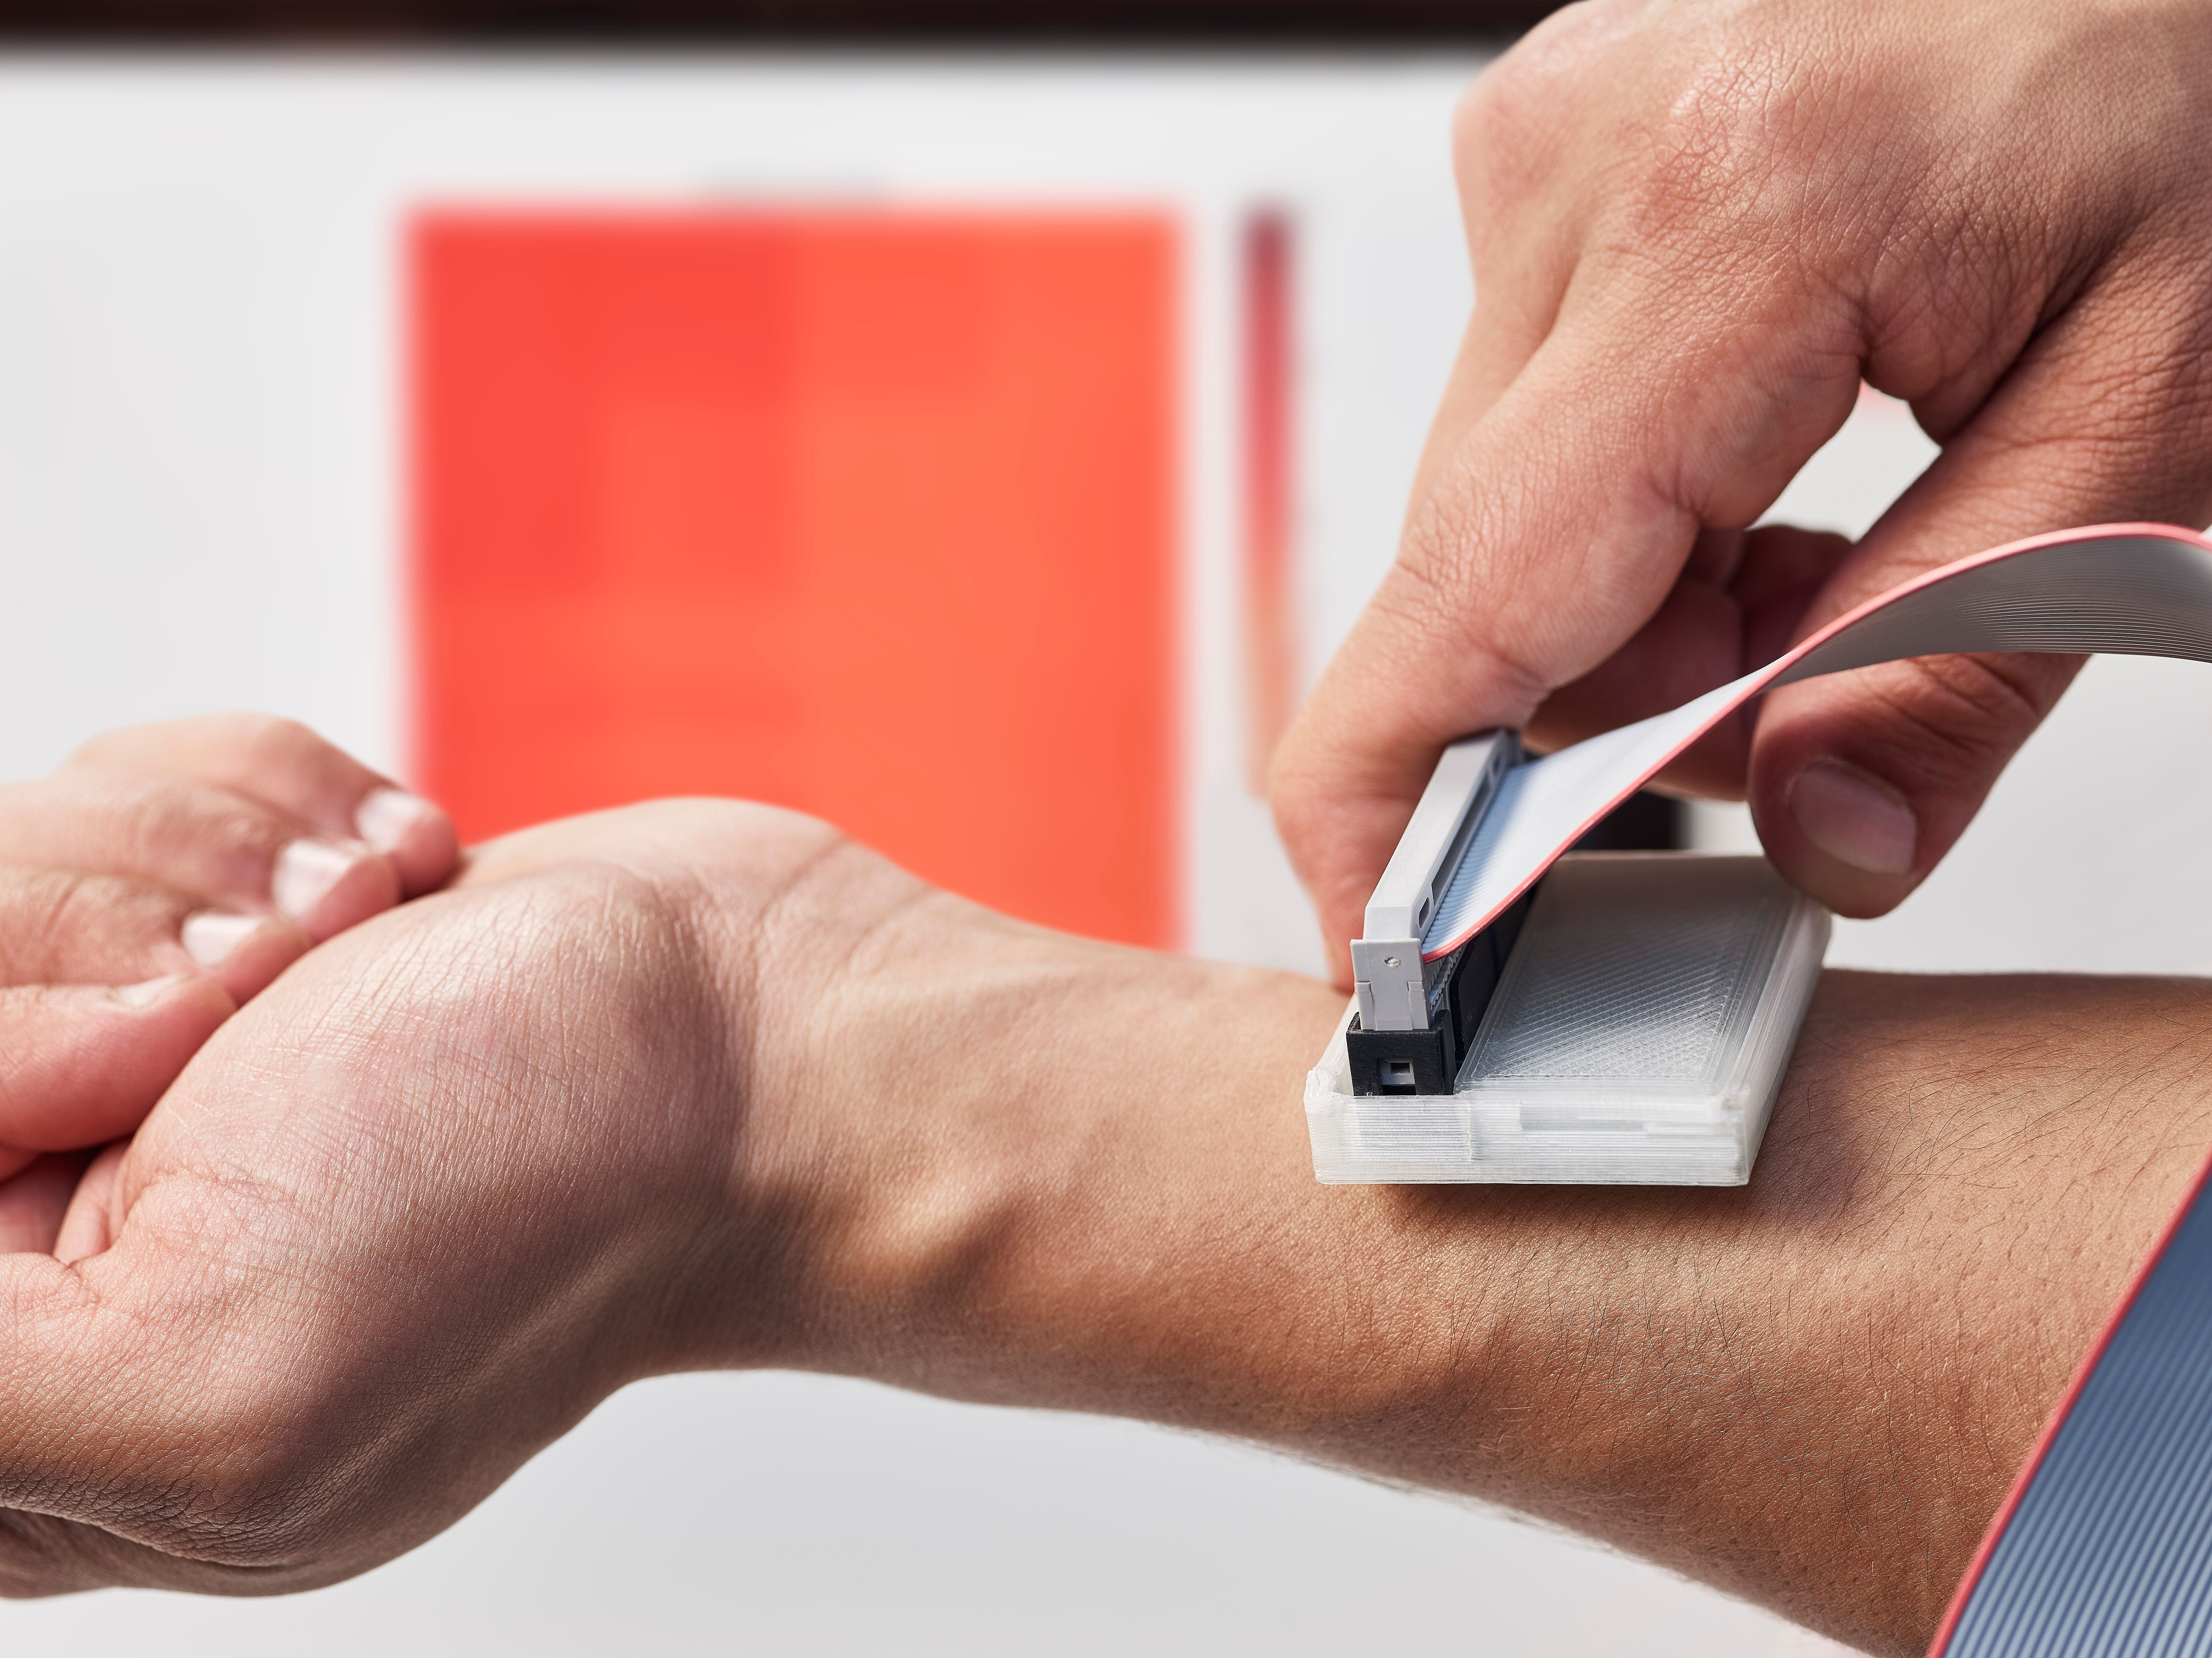 This Incredible Gadget Can Detect Skin Cancer Cheaply And